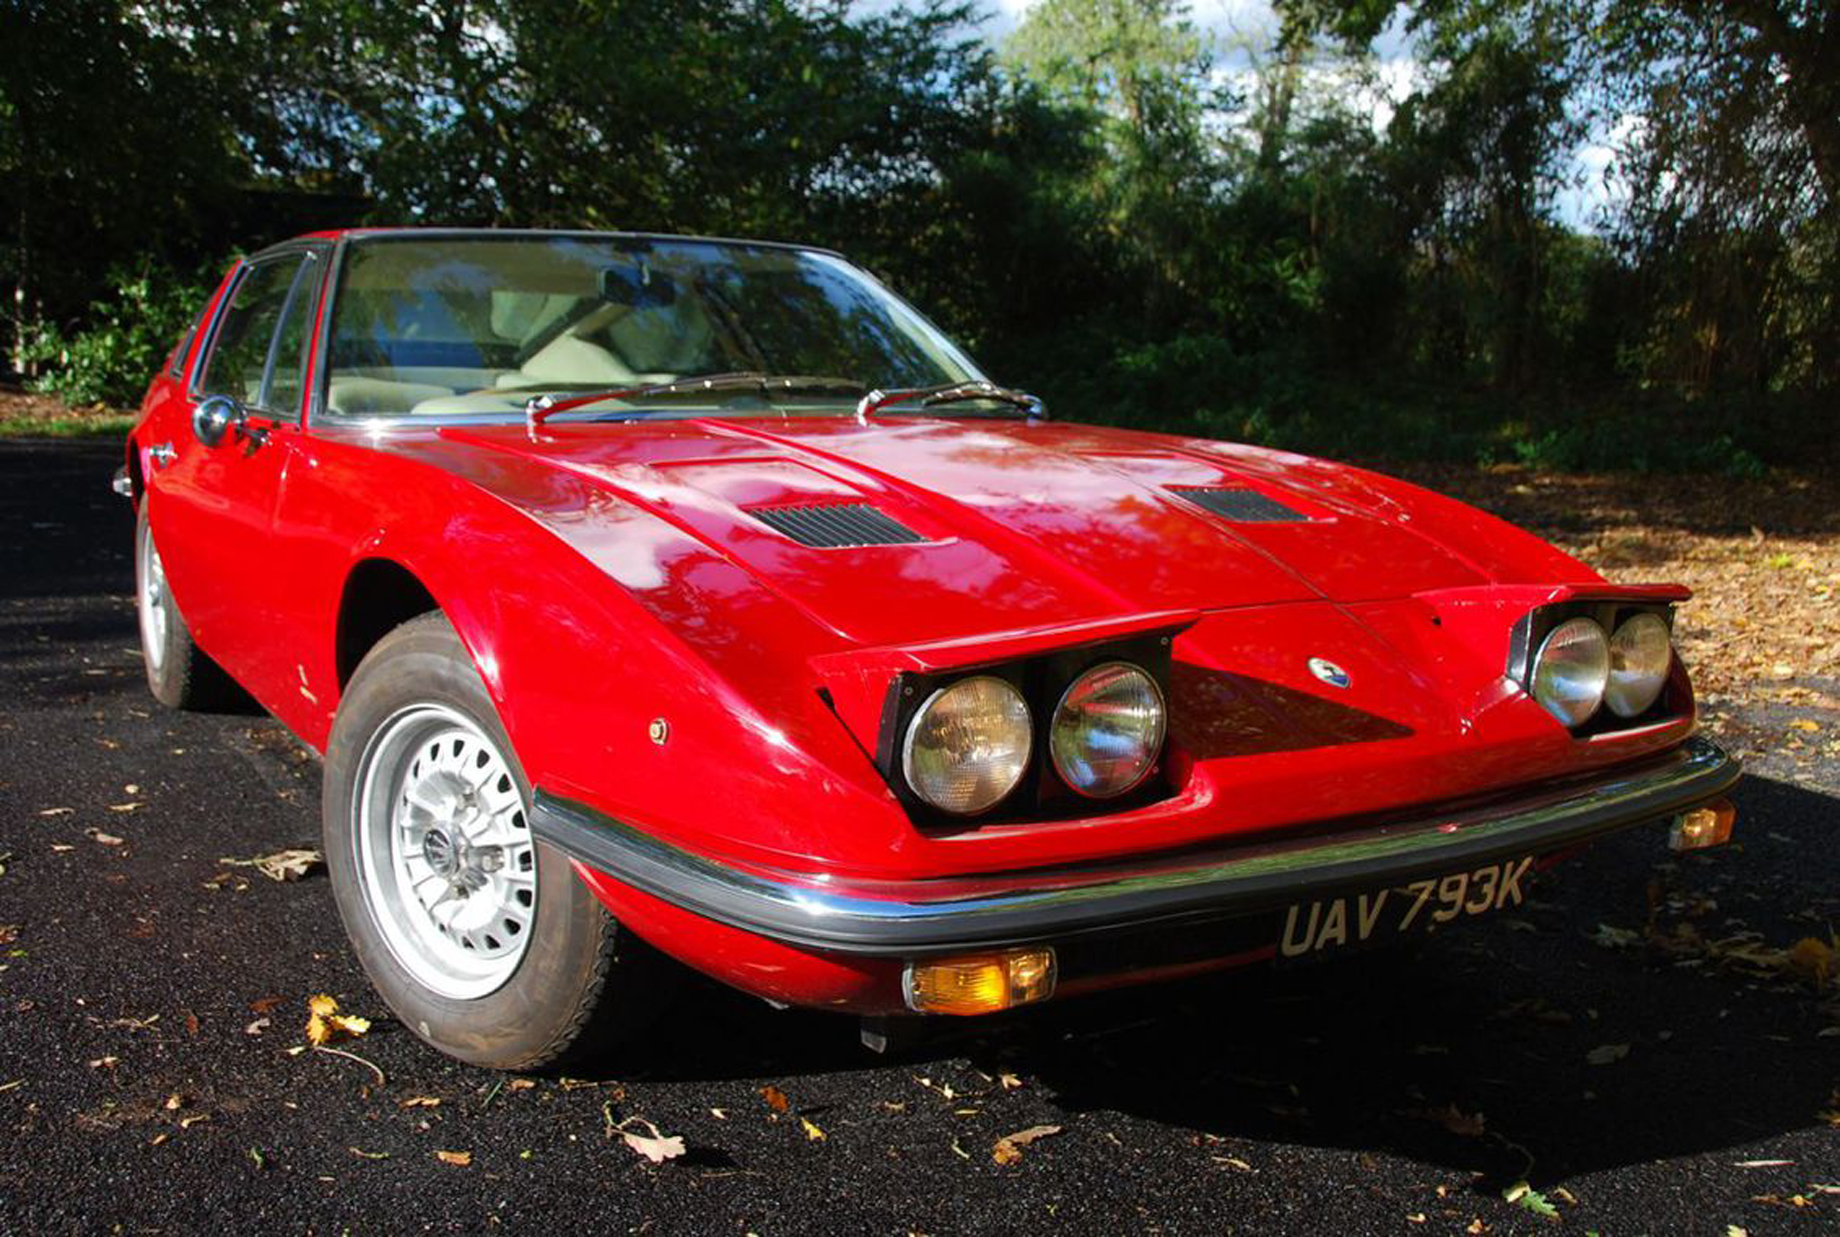 It was one of Vignale's final designs before being bought be De Tomaso